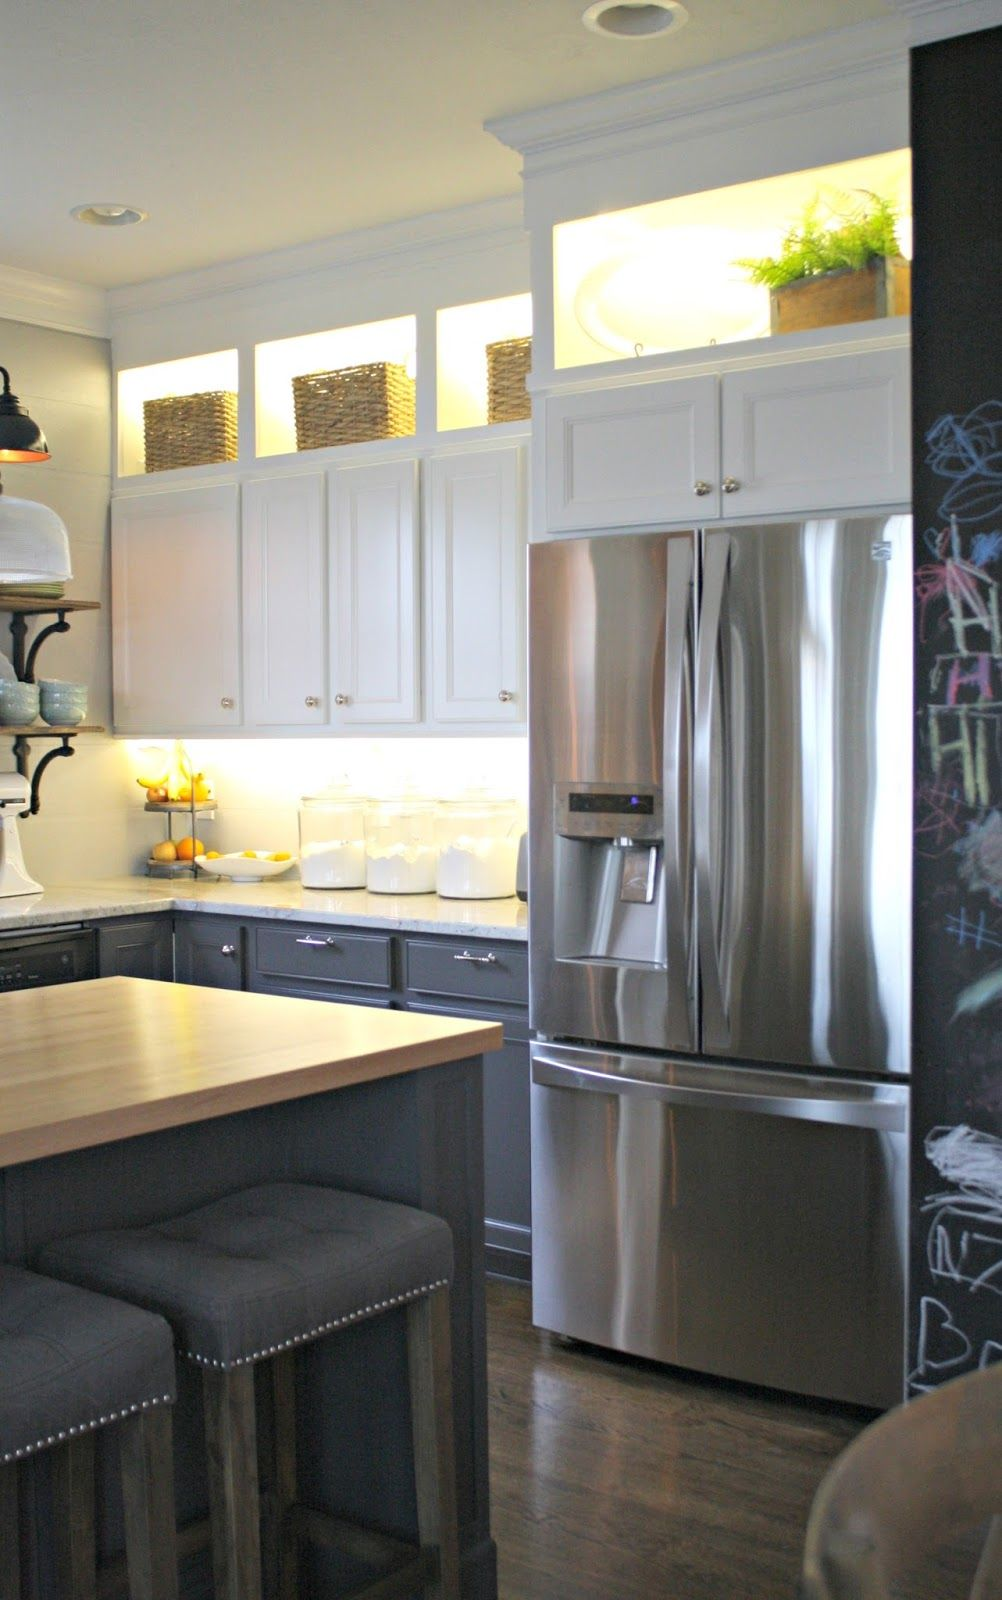 Diy Upper And Lower Cabinet Lighting With Images Kitchen Renovation New Kitchen Cabinets Kitchen Remodel